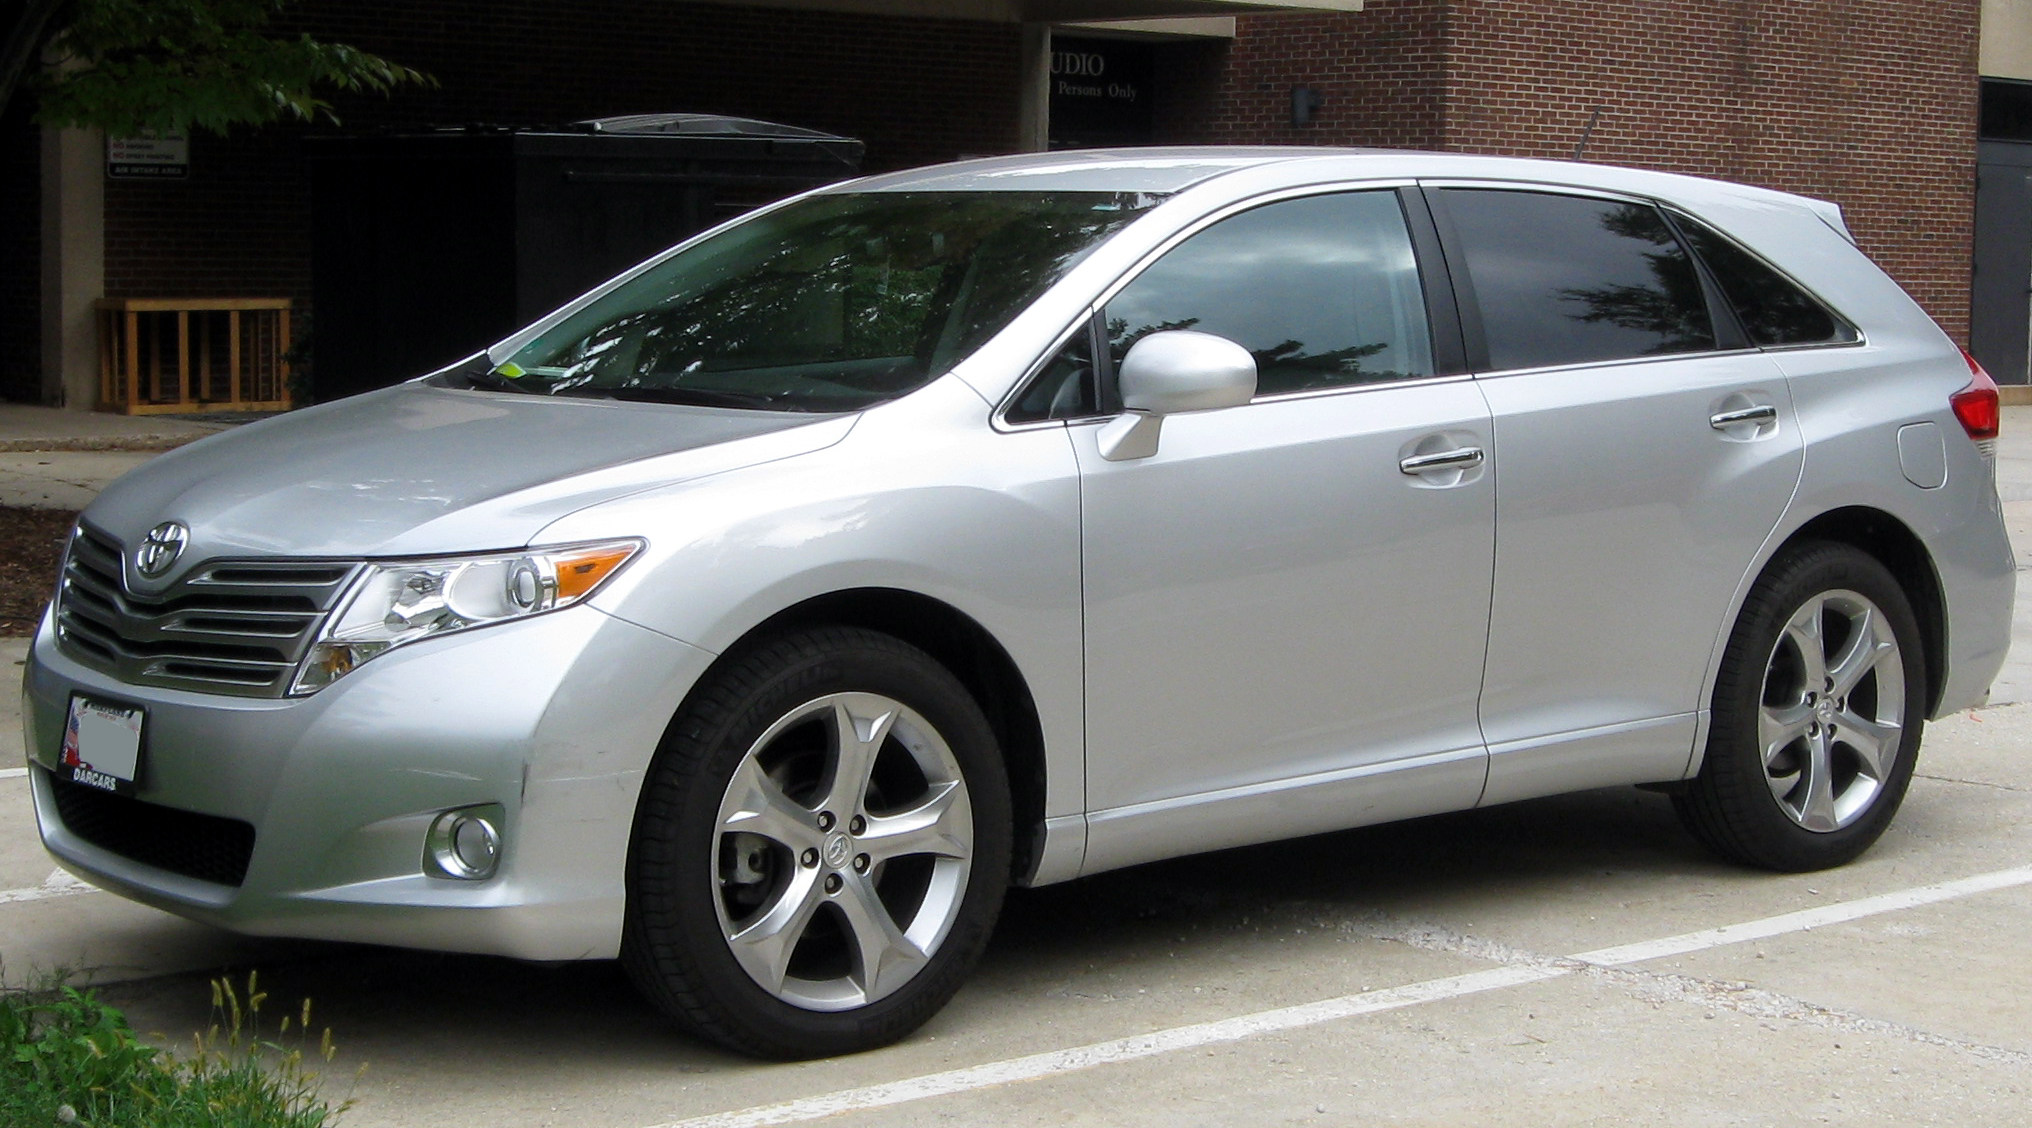 2010 Toyota Venza Information And Photos Zombiedrive